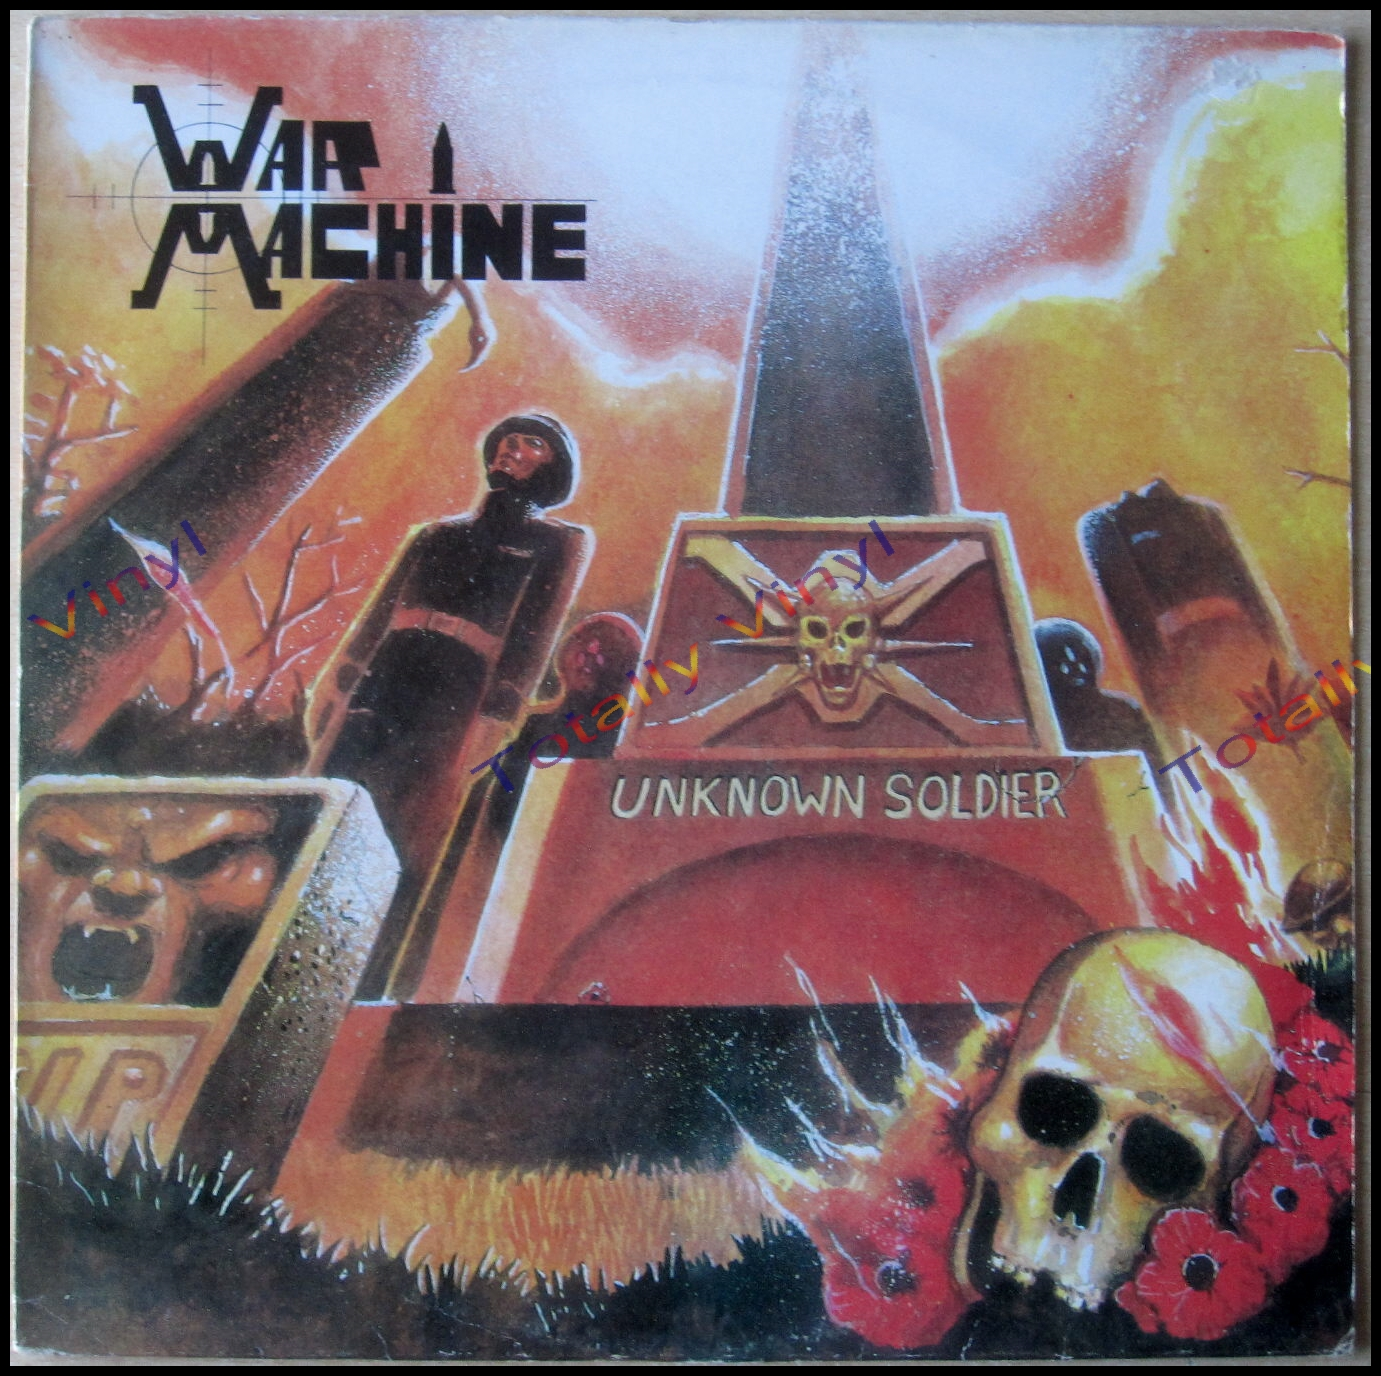 War Machine Record